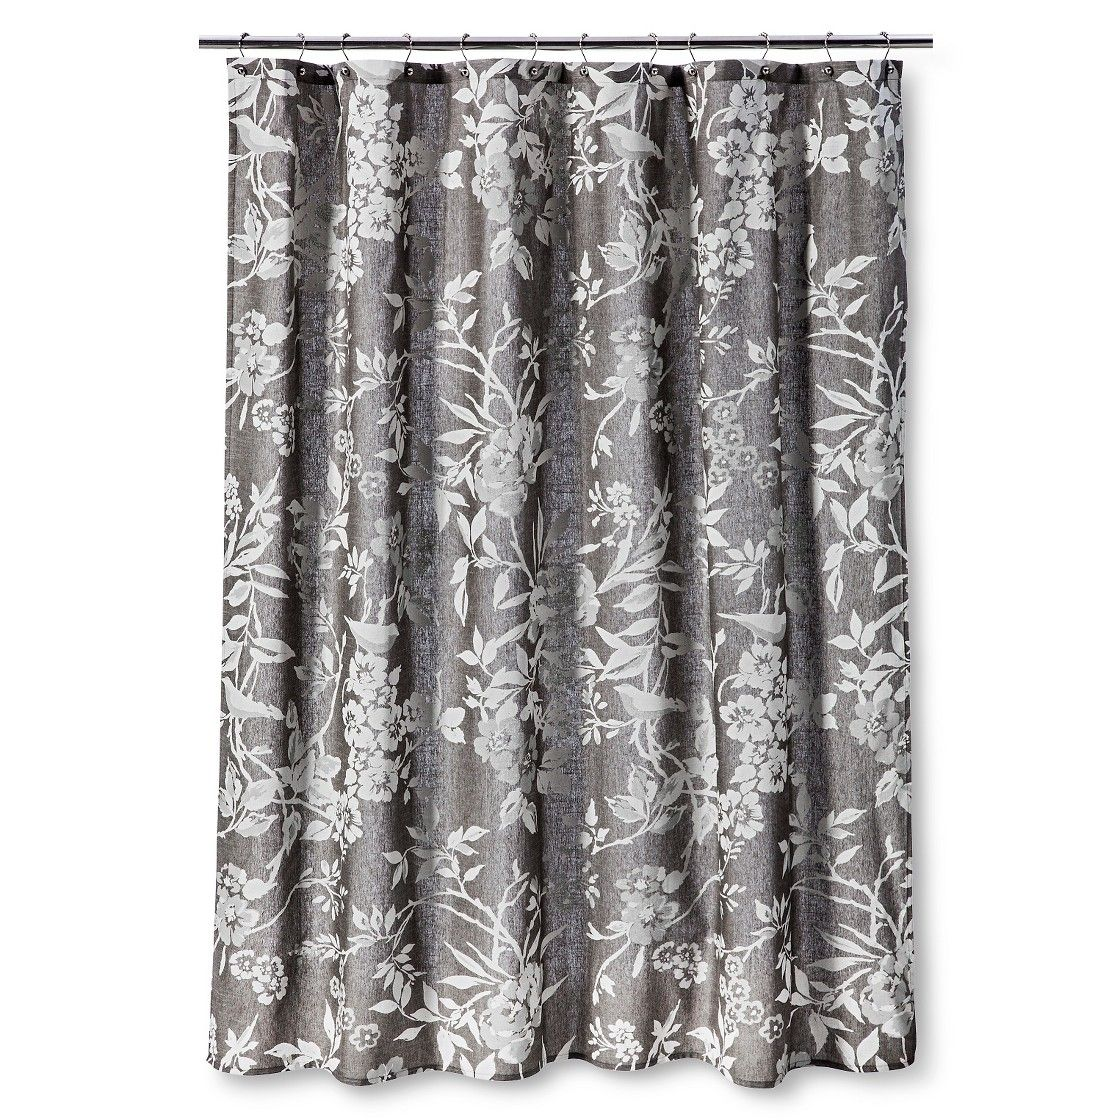 Target shower curtains threshold - Threshold Shower Curtain Gray Floral